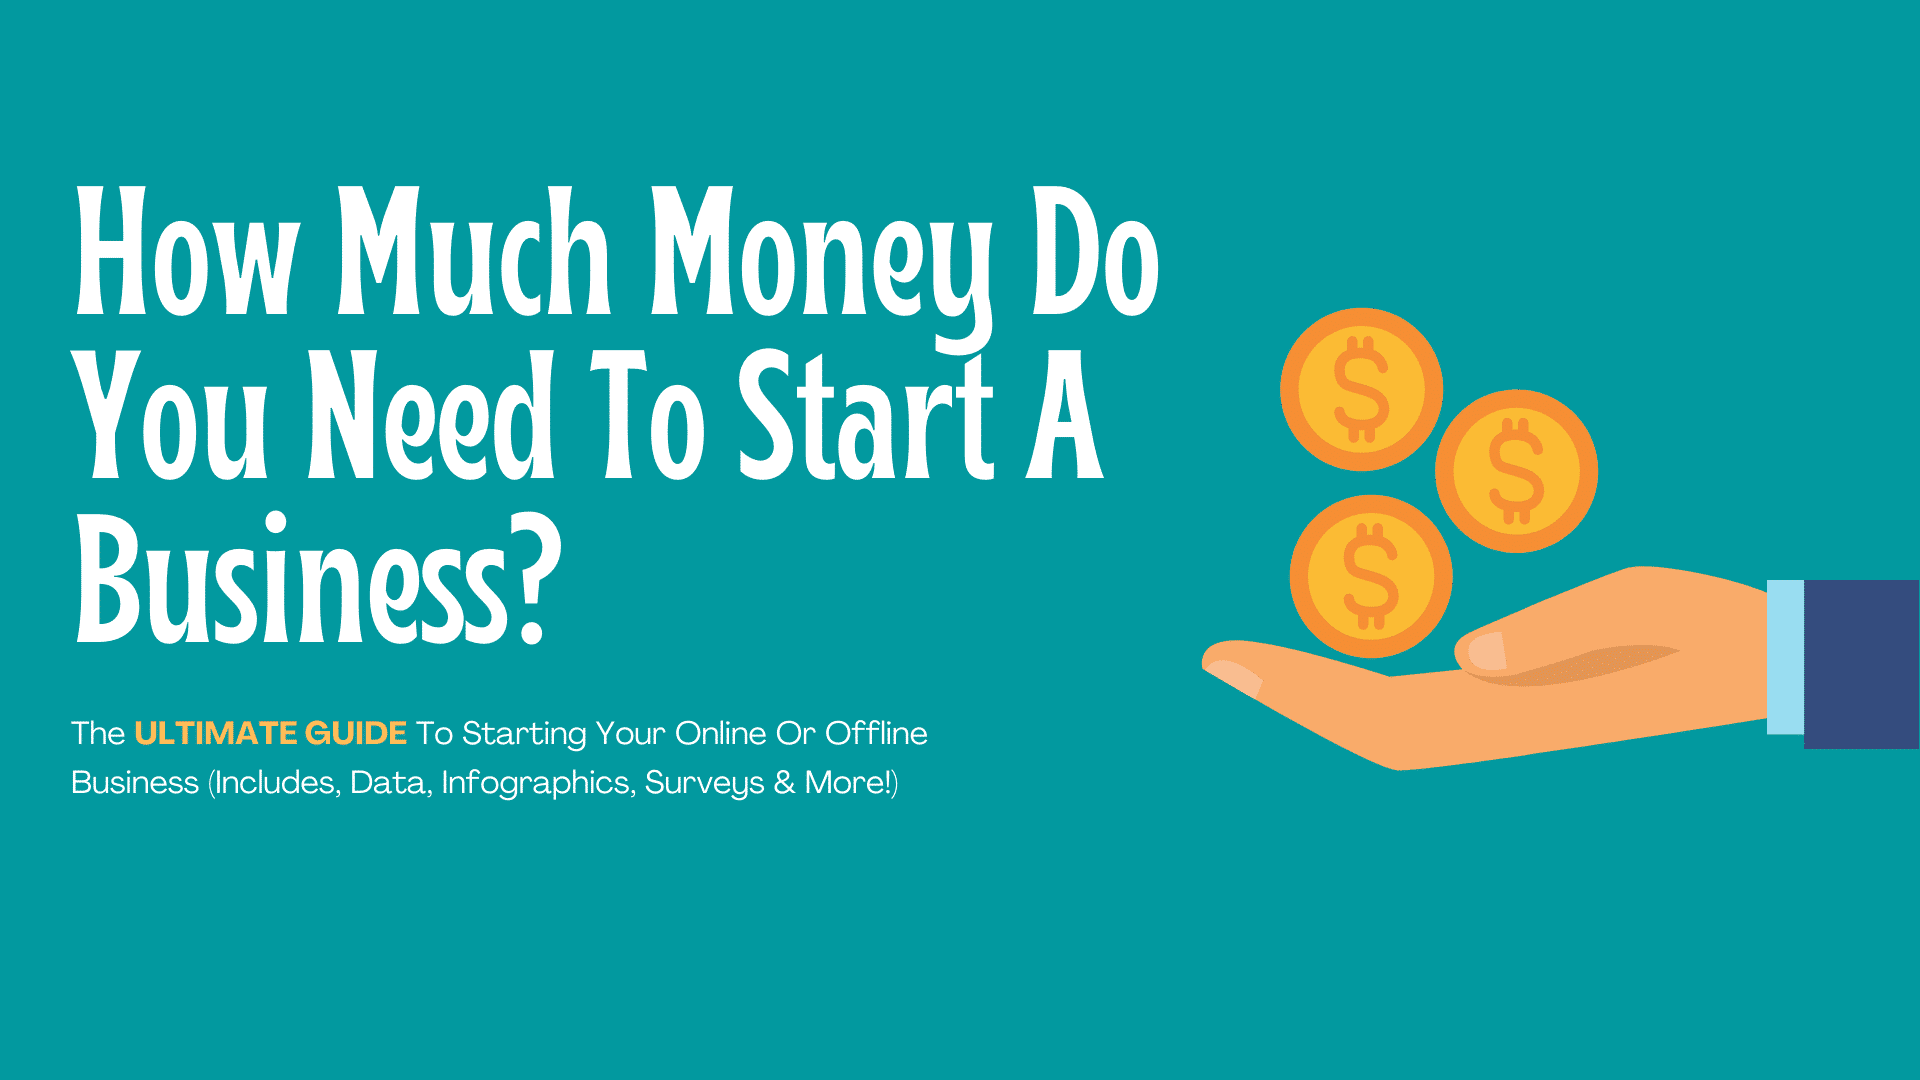 How Much Money Do You Need To Start A Business featured image(2)